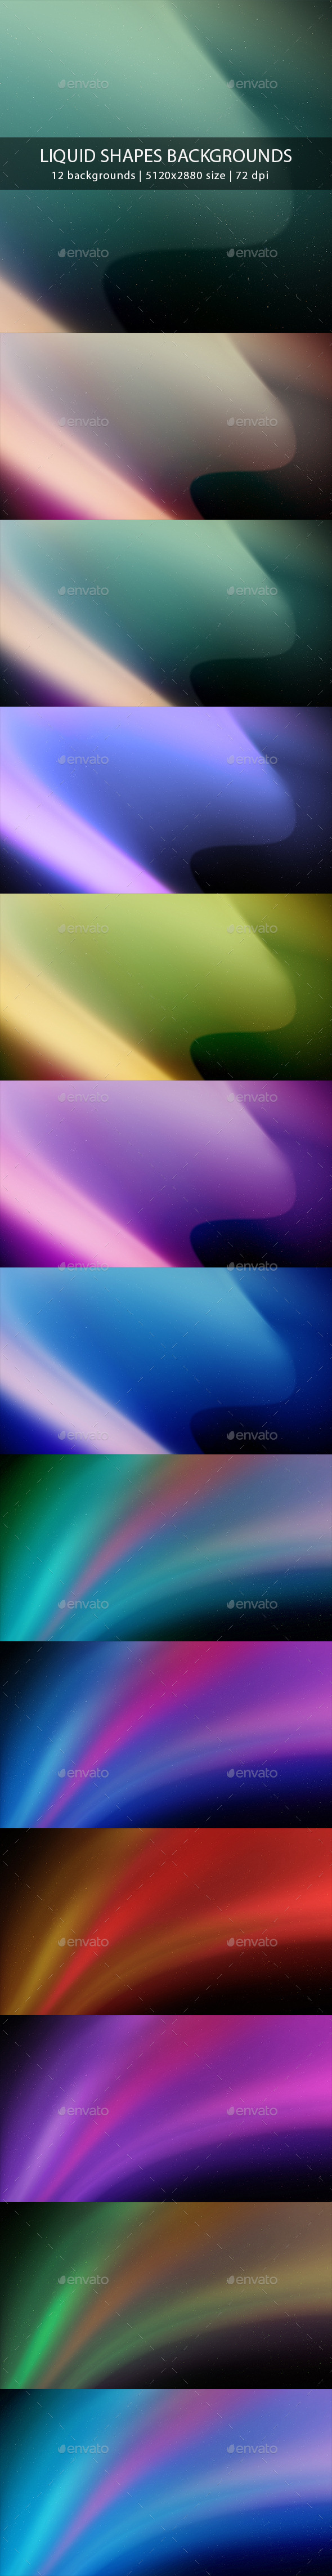 Liquid Shapes Backgrounds - Abstract Backgrounds